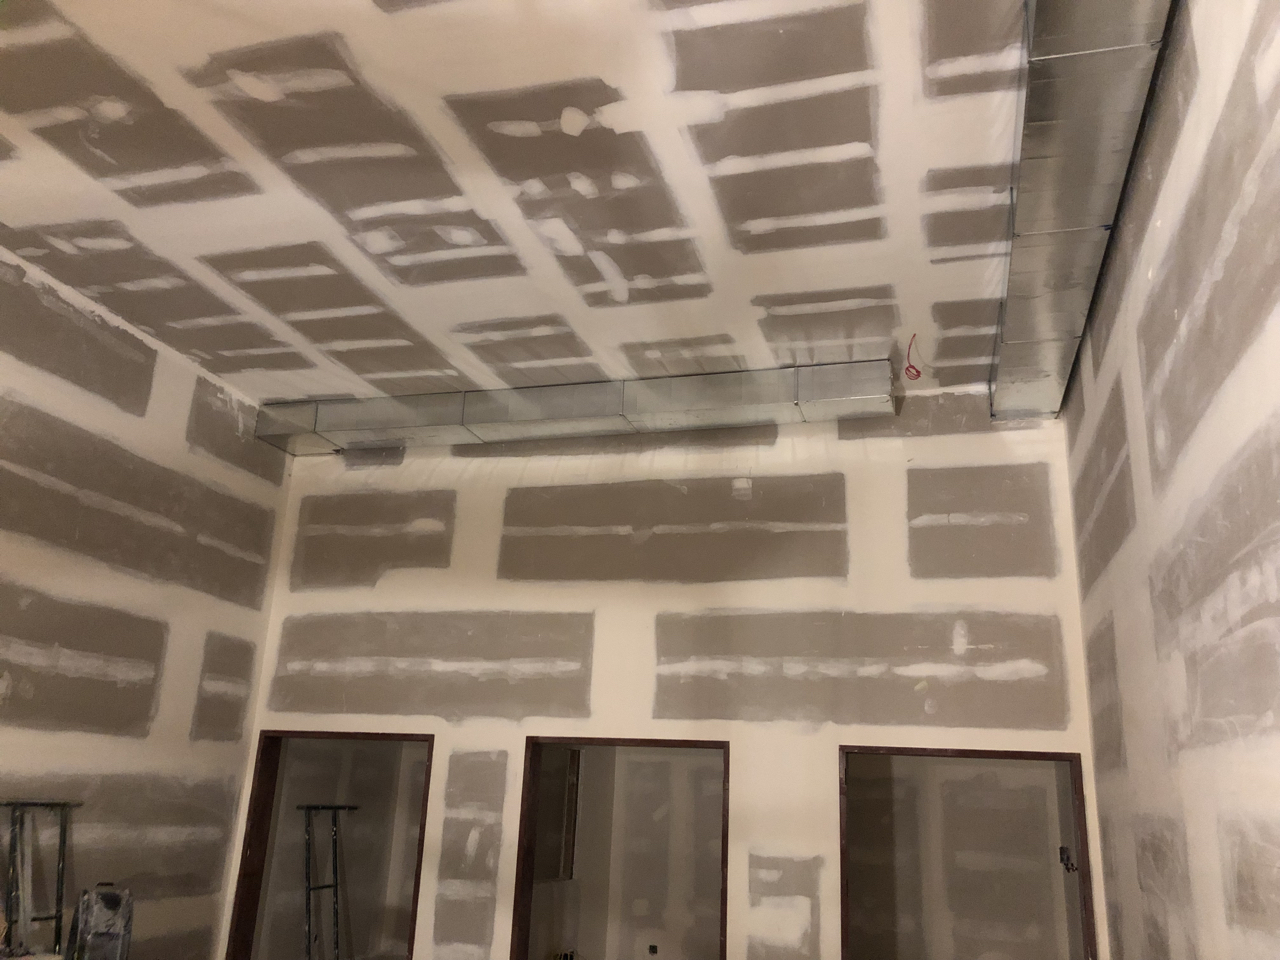 Tracking room 1's ceiling finished and duct being run.